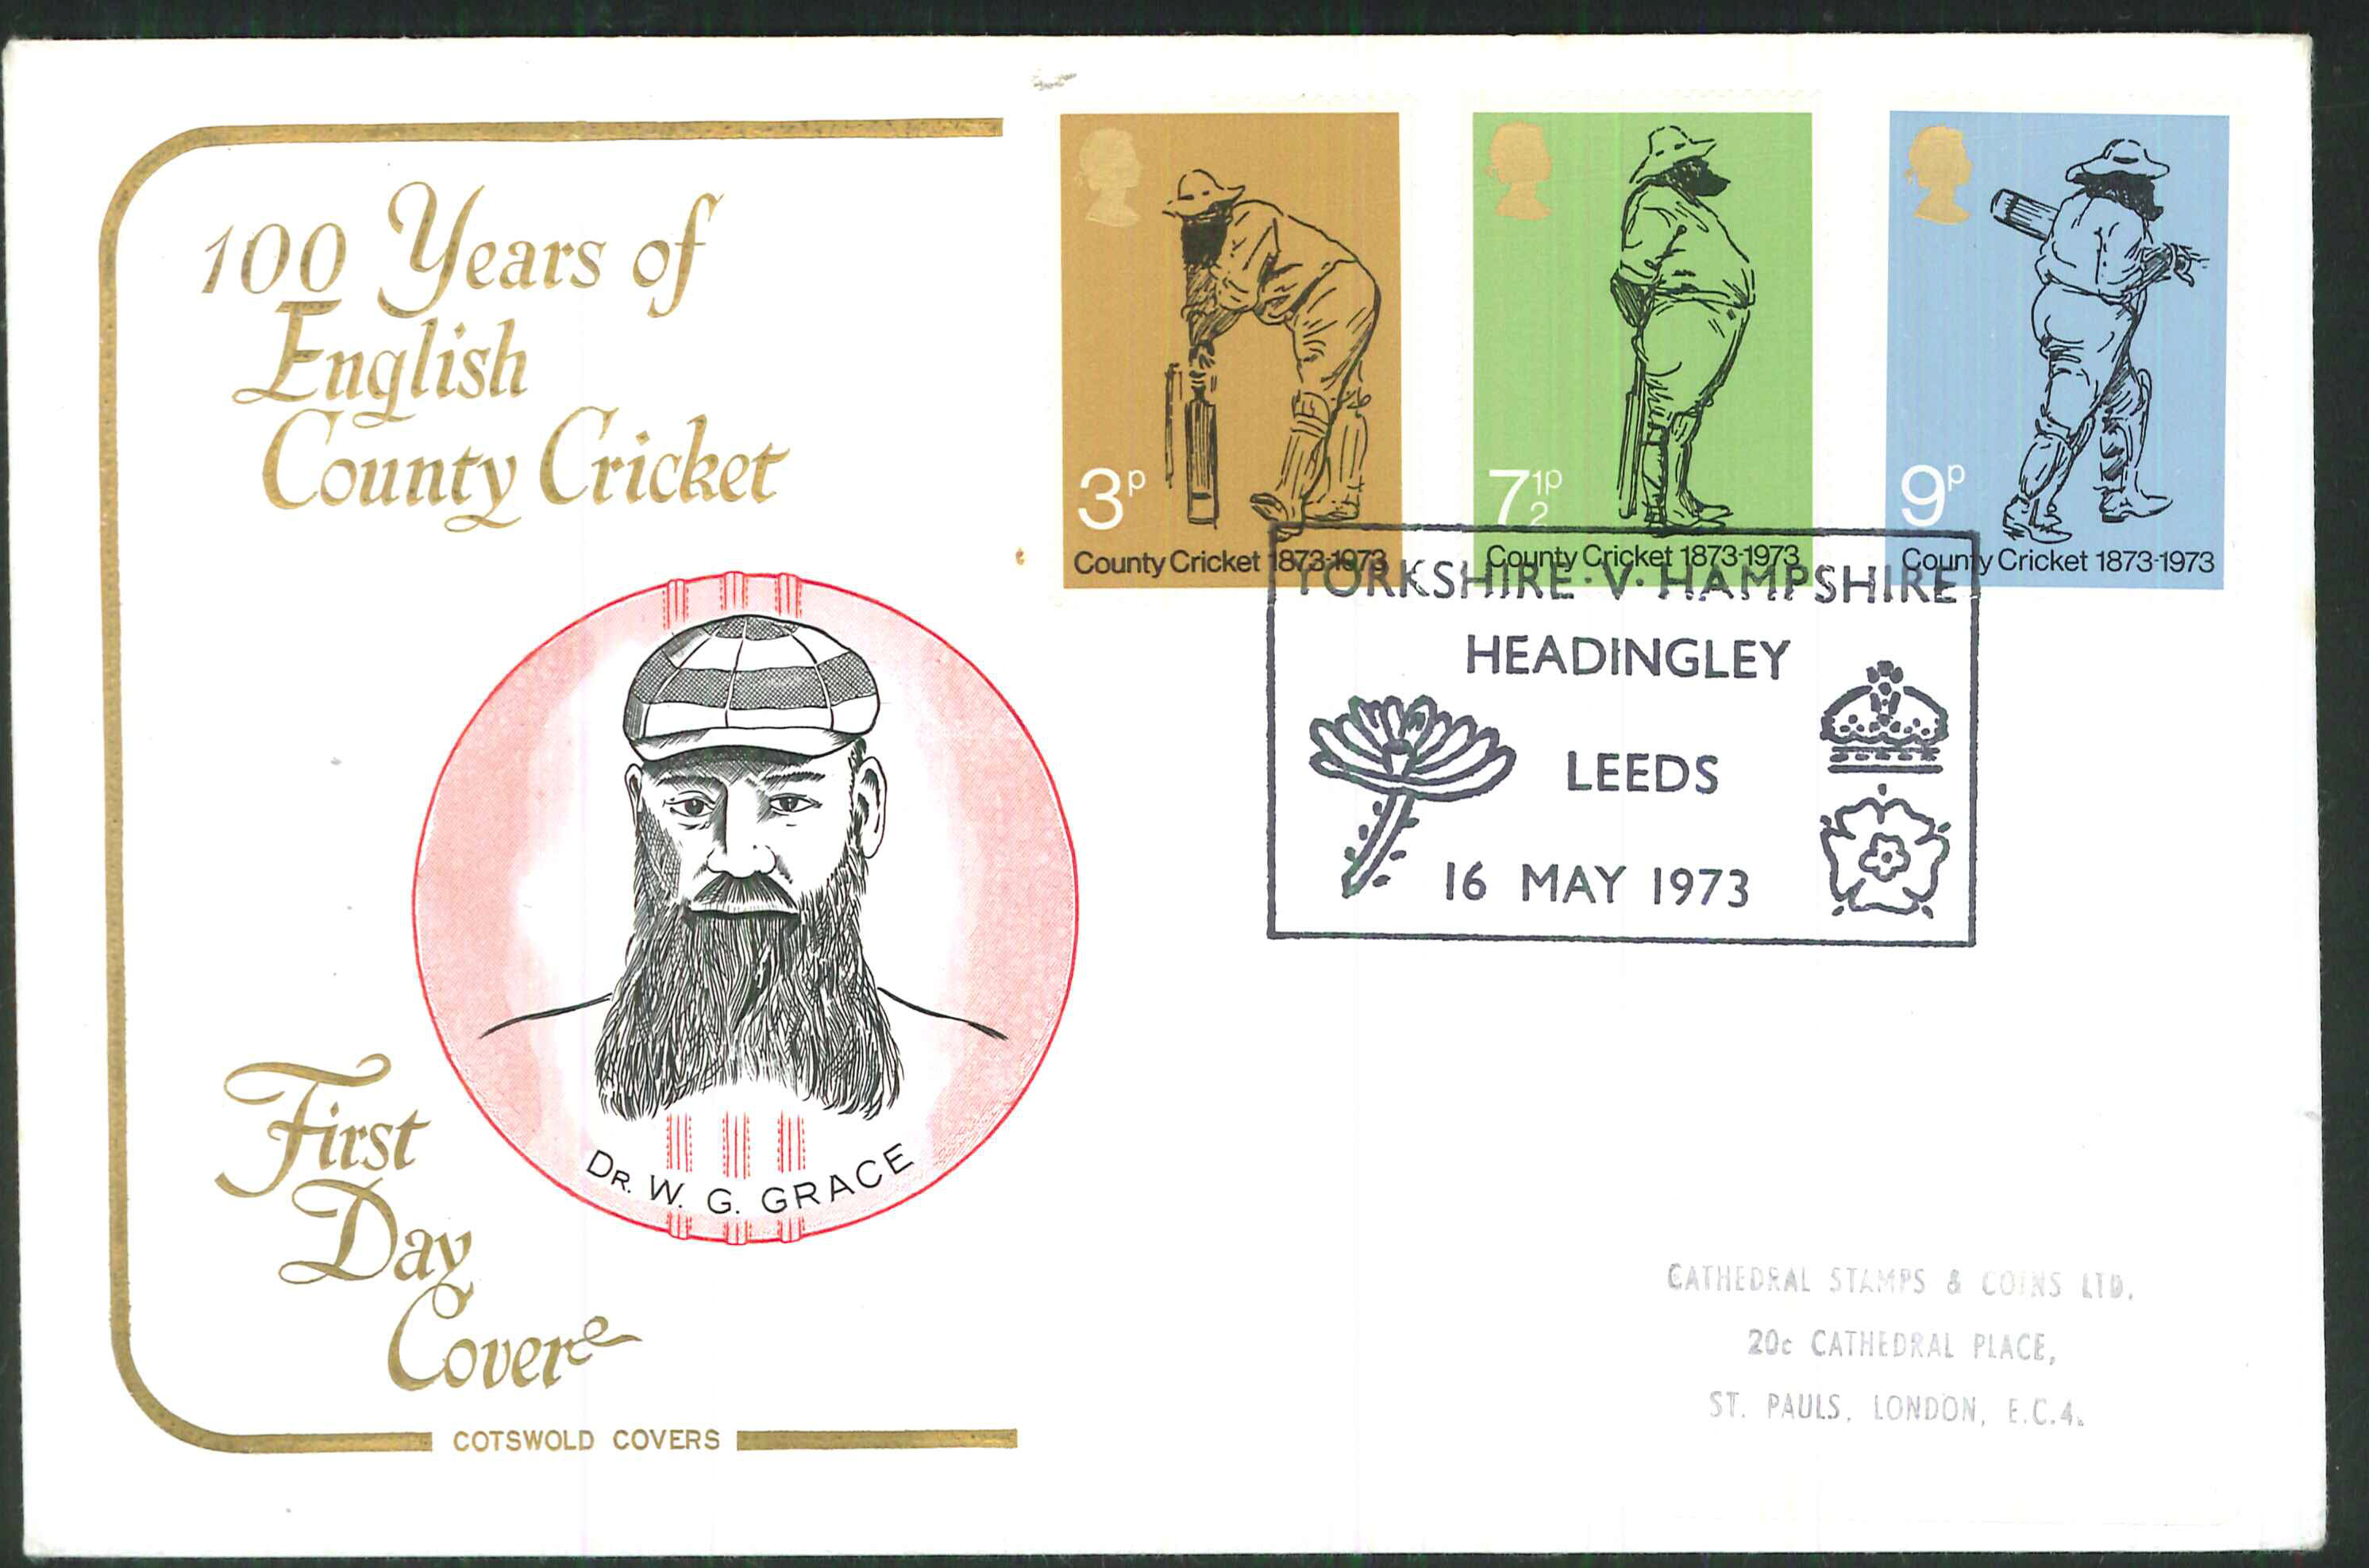 1973 Cotswold Cricket FDC Headingley,Leeds Handstamp